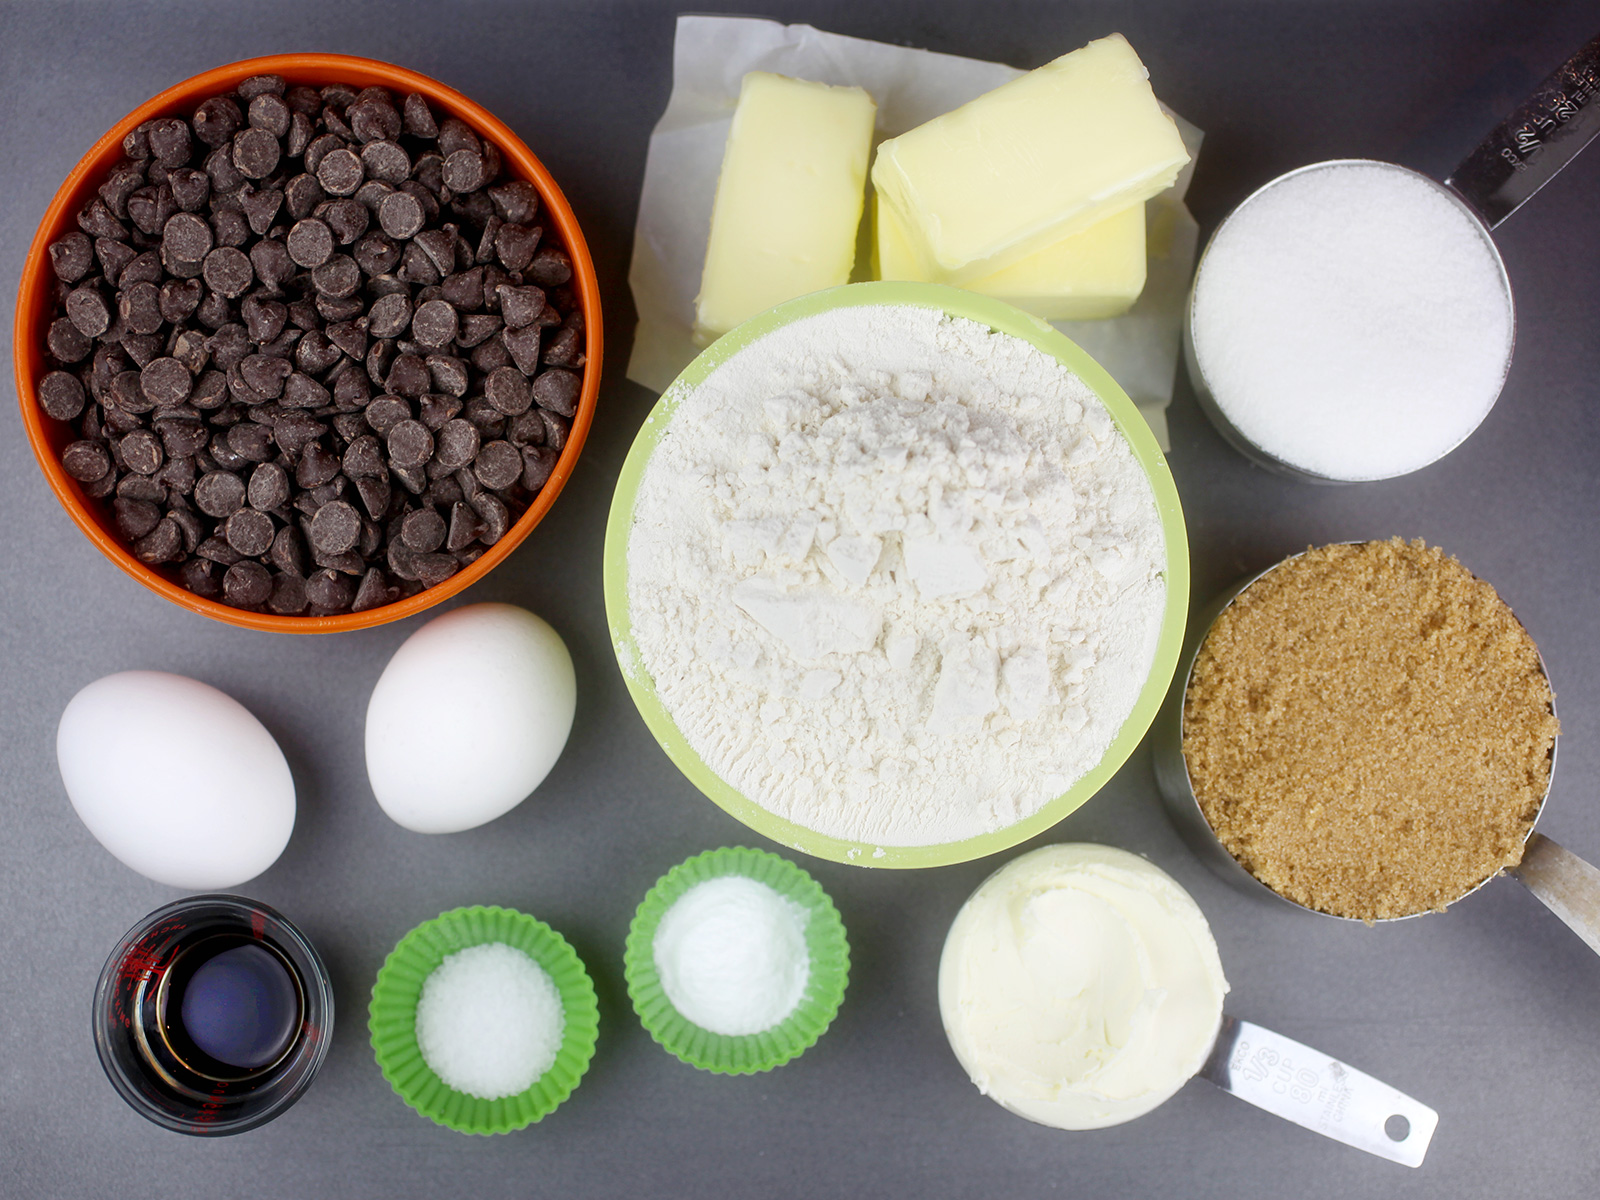 Cream Cheese Chocolate Chip Cookie Ingredients